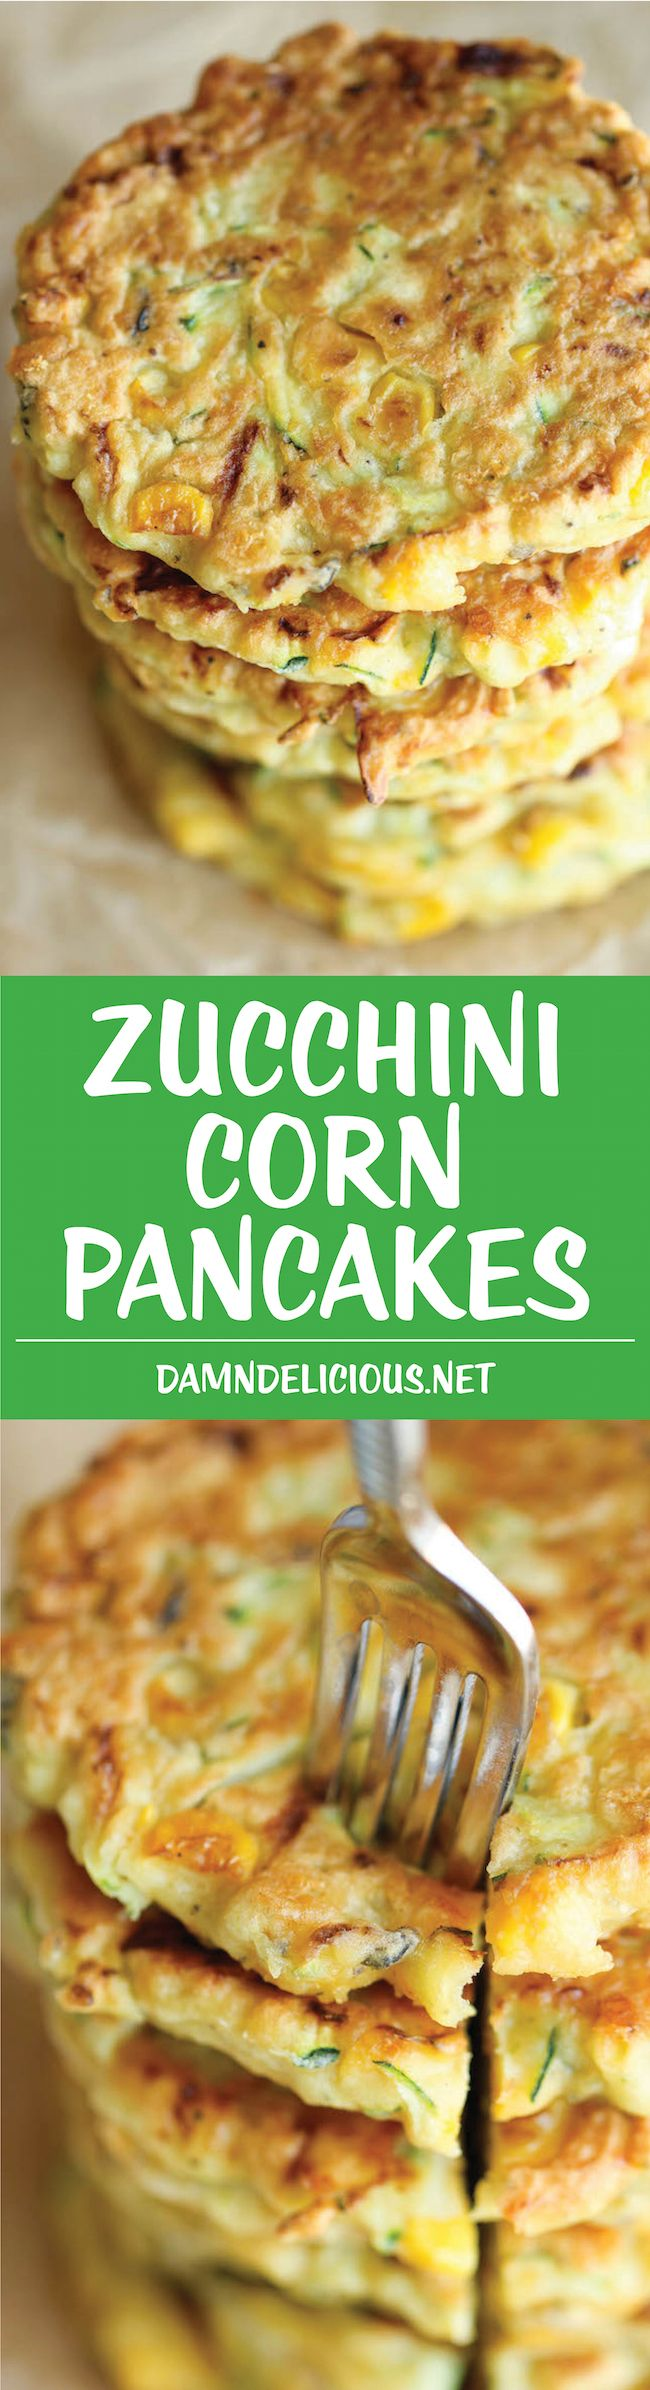 "Zucchini Corn Pancakes - These easy pancakes are the perfect side dish or appetizer to any meal. And best of all, they don't even taste ""healthy""!"